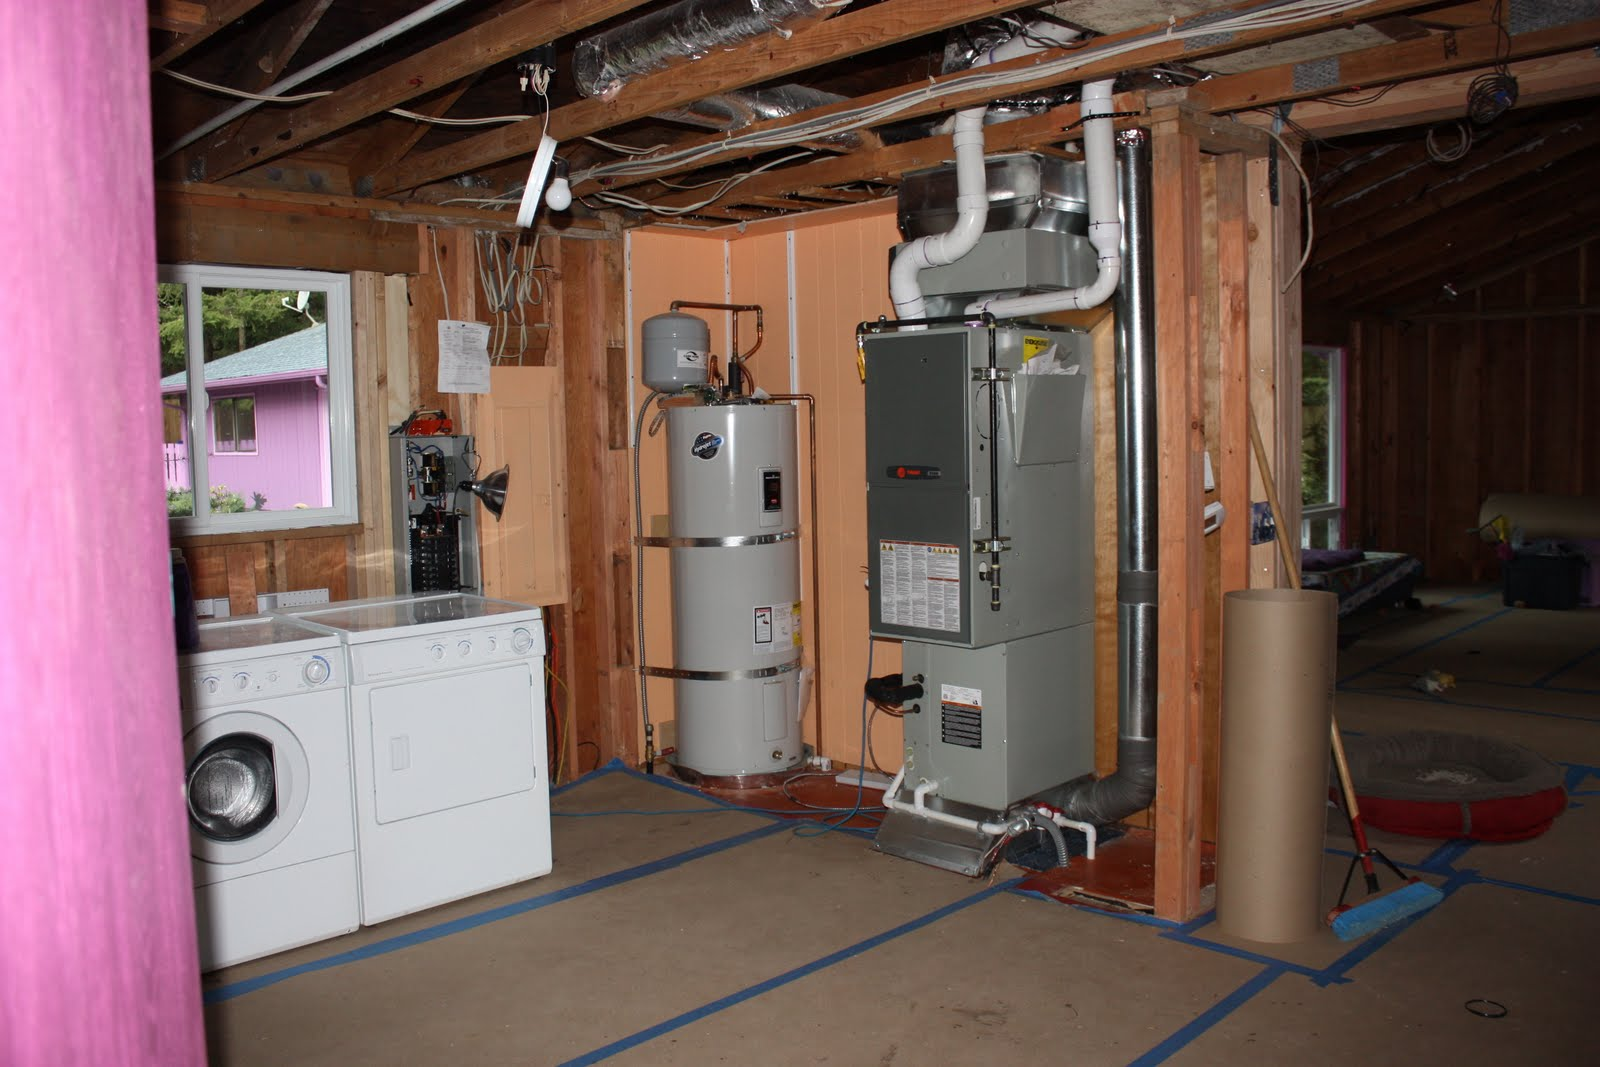 gas furnace wiring diagram for a trailer plug new cost replacement vs repair 2019